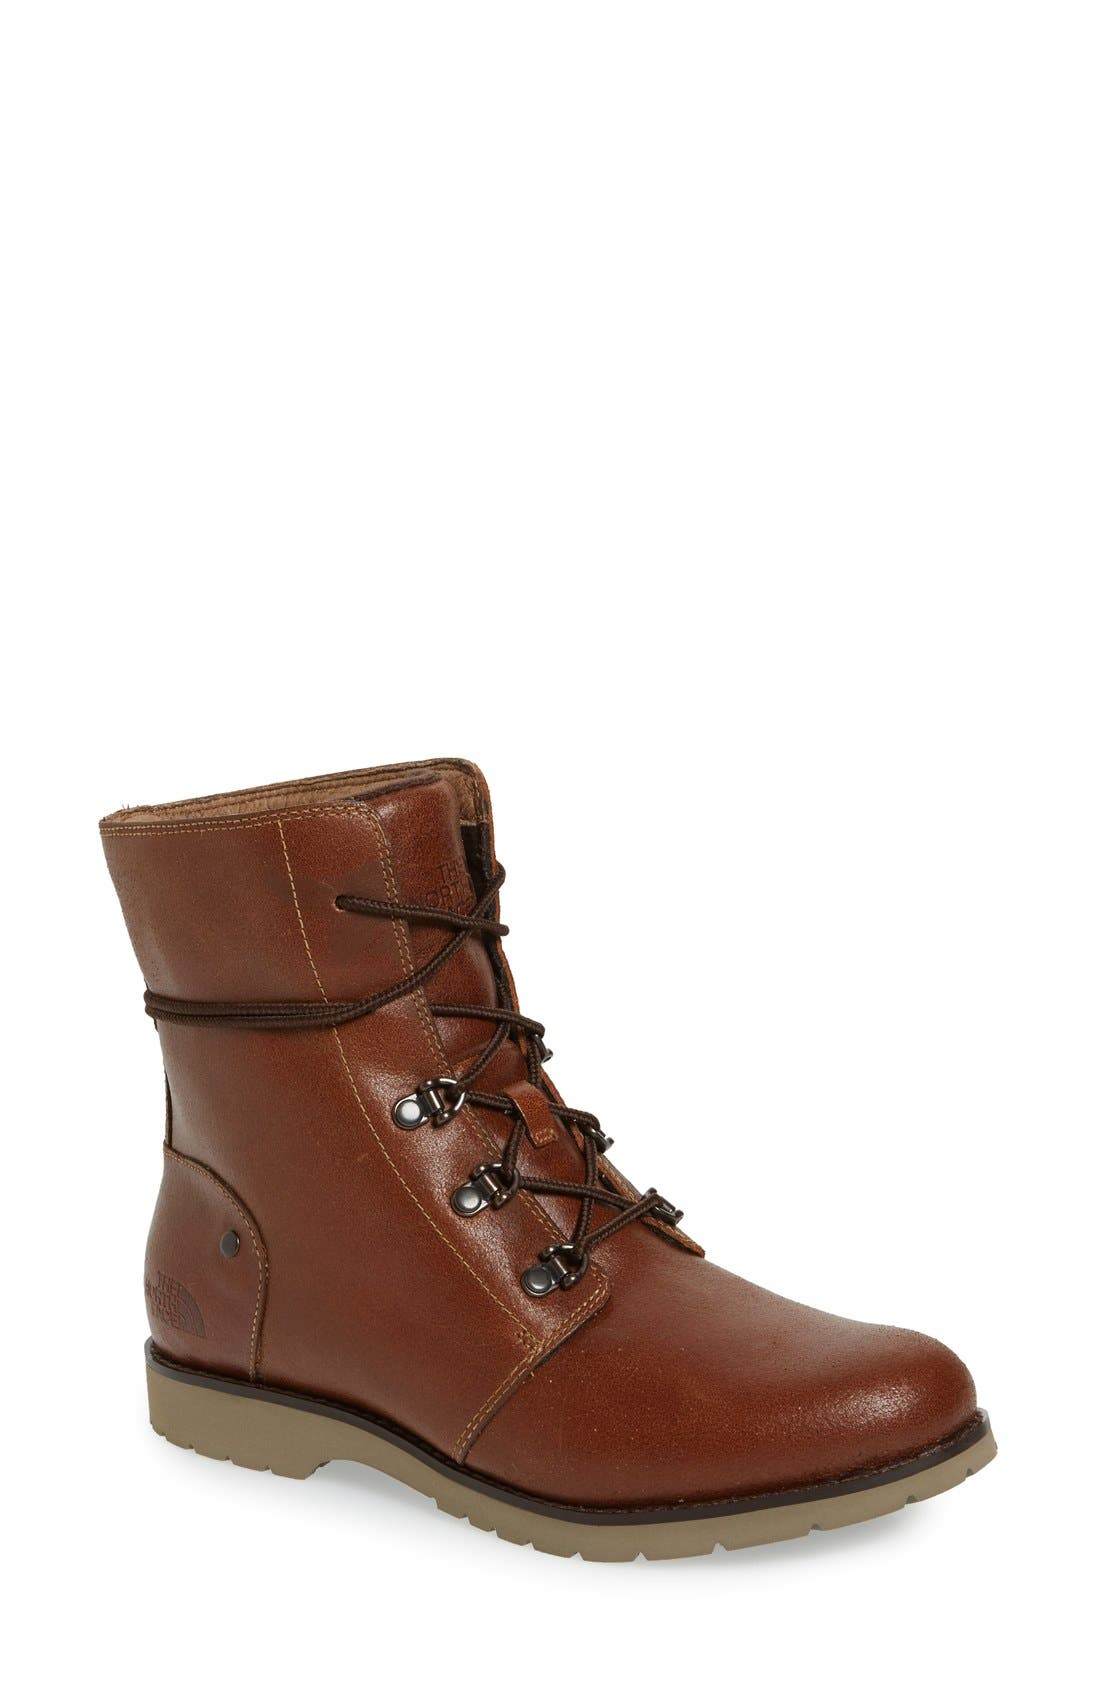 'Ballard' Boot,                             Main thumbnail 1, color,                             Dachshund Brown